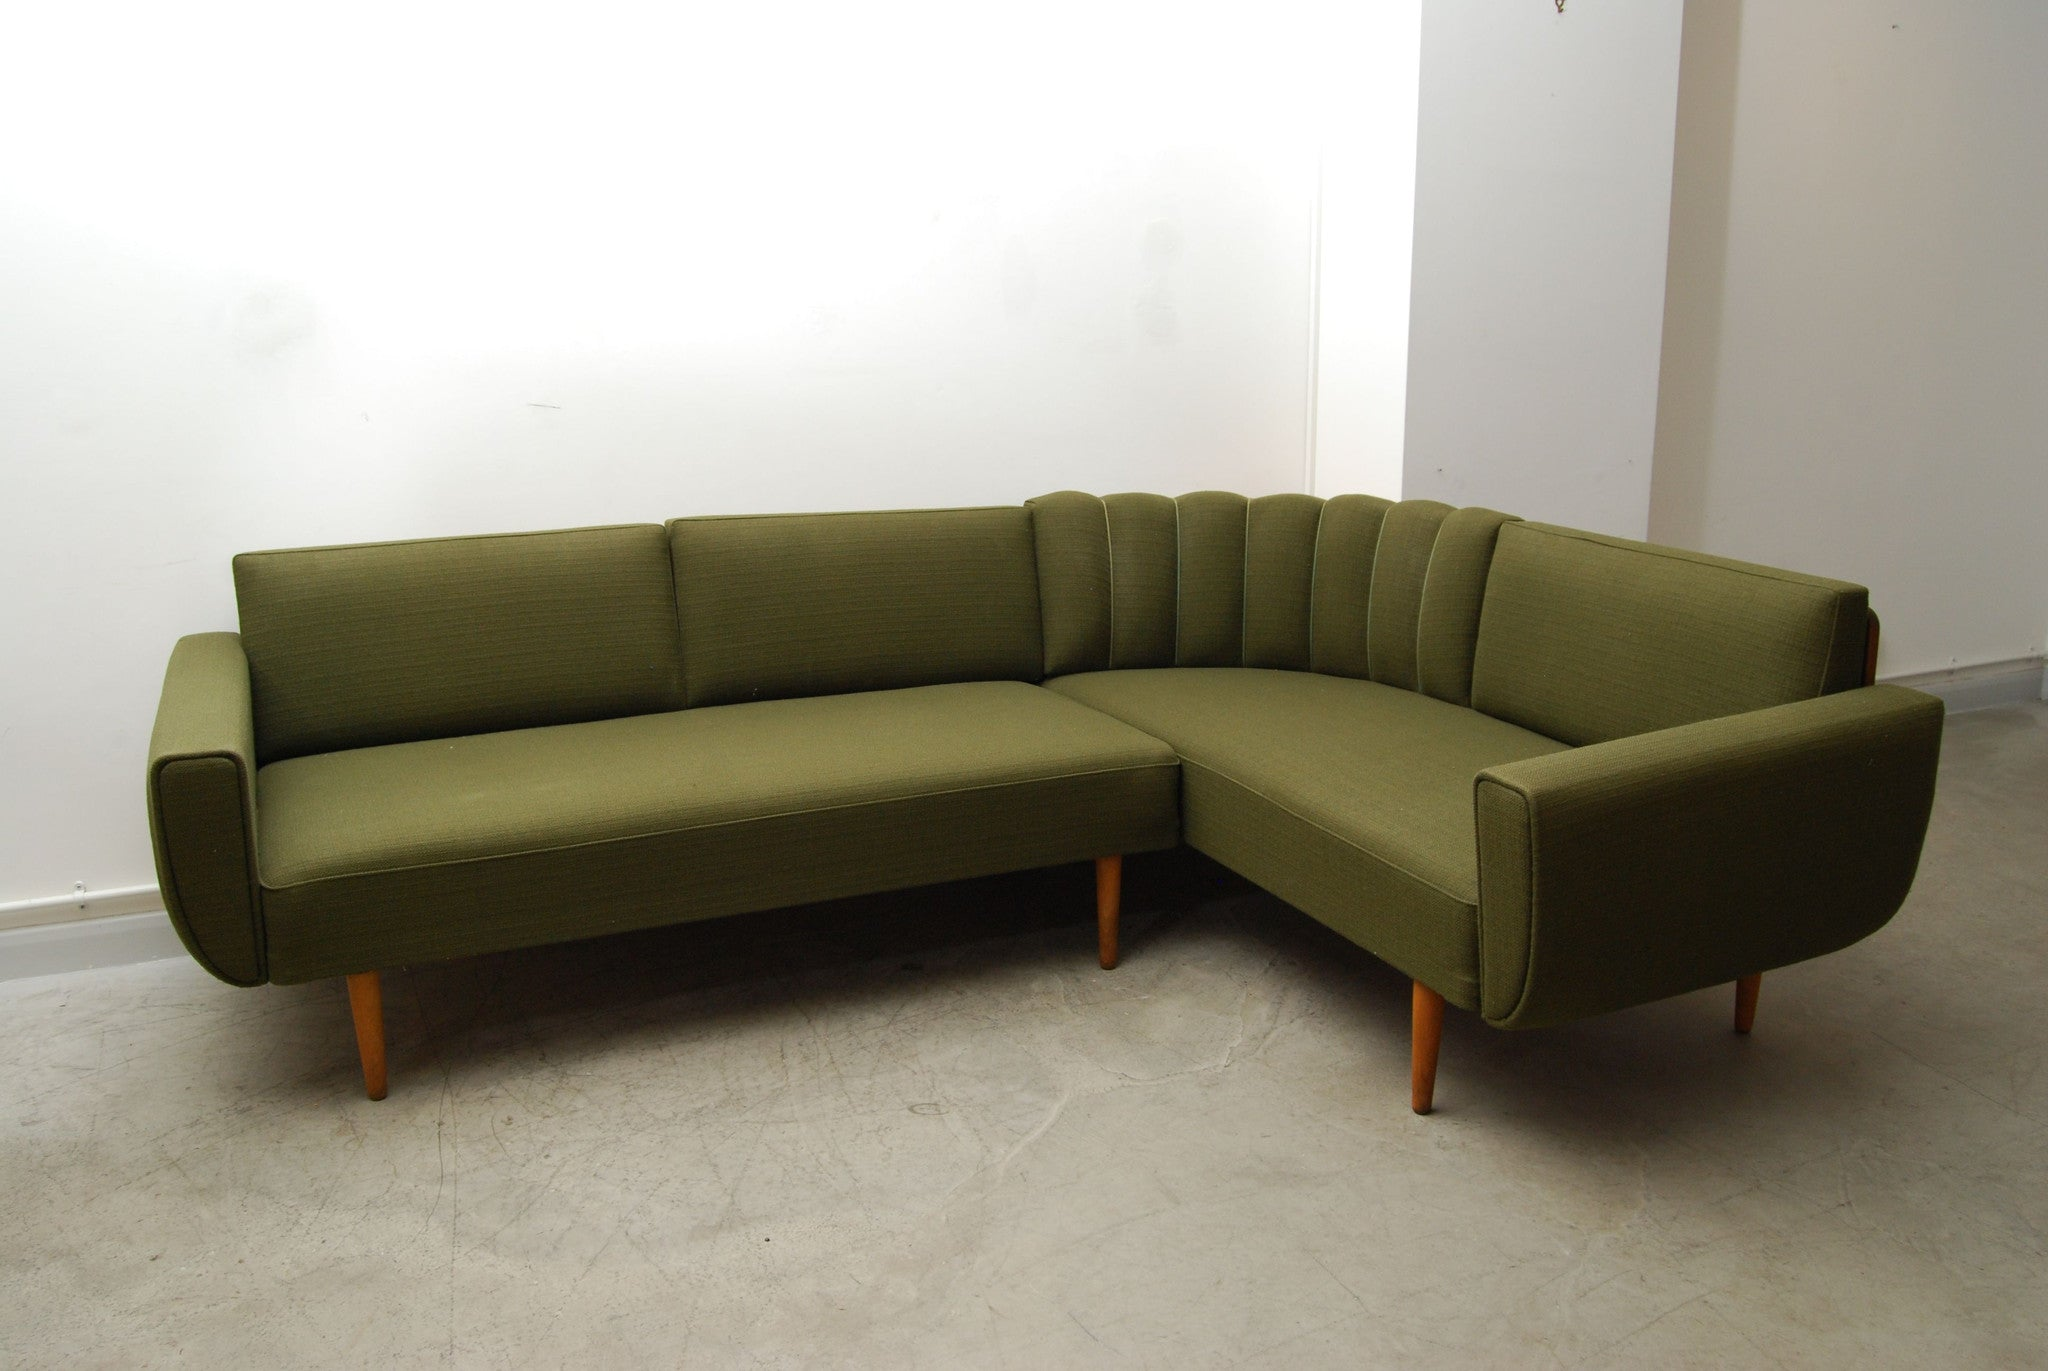 Chase & Sorensen L-shaped sofa / sofabed